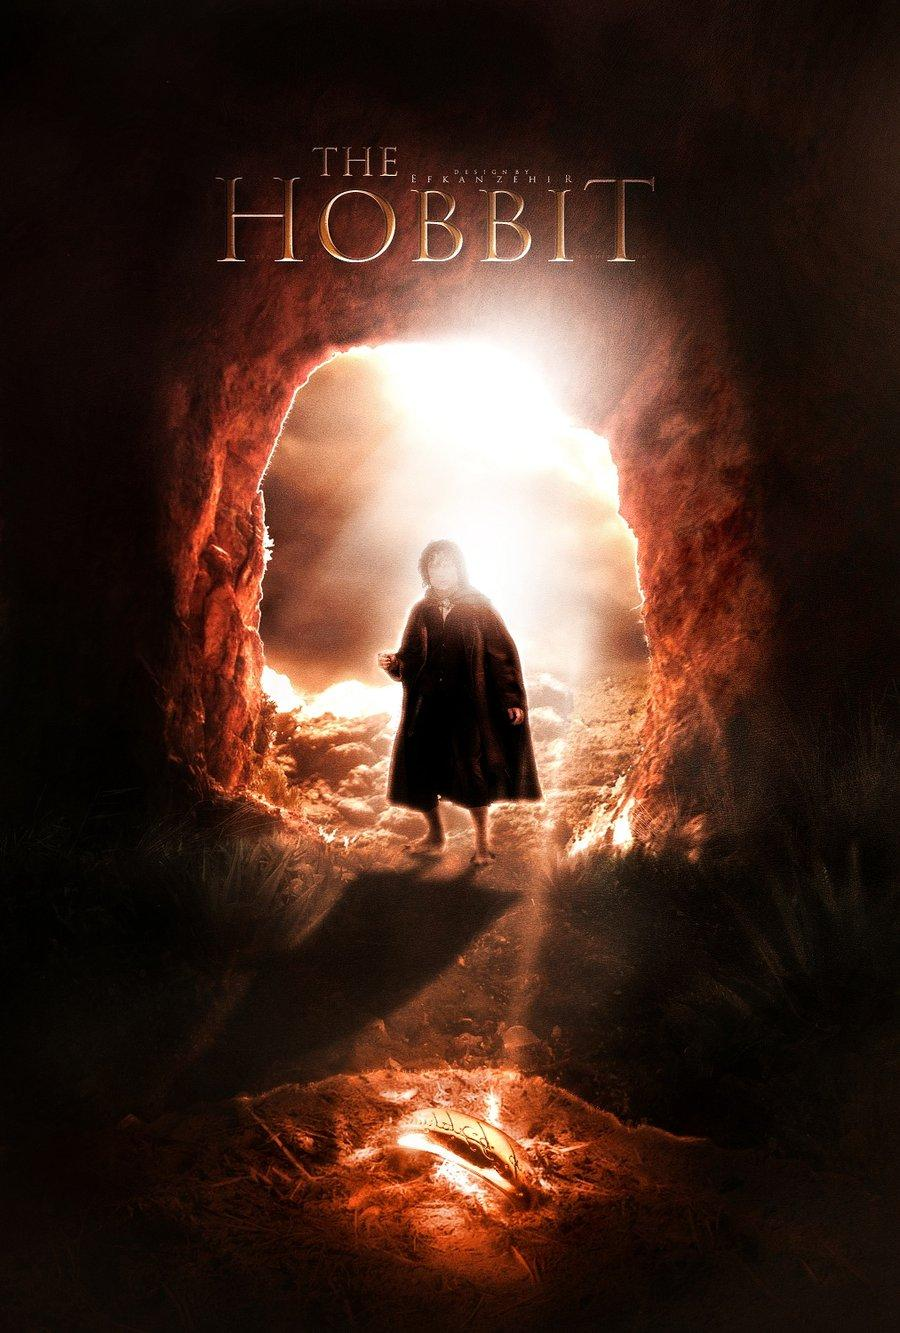 The promotional poster for the upcoming film adaptation of The Hobbit.